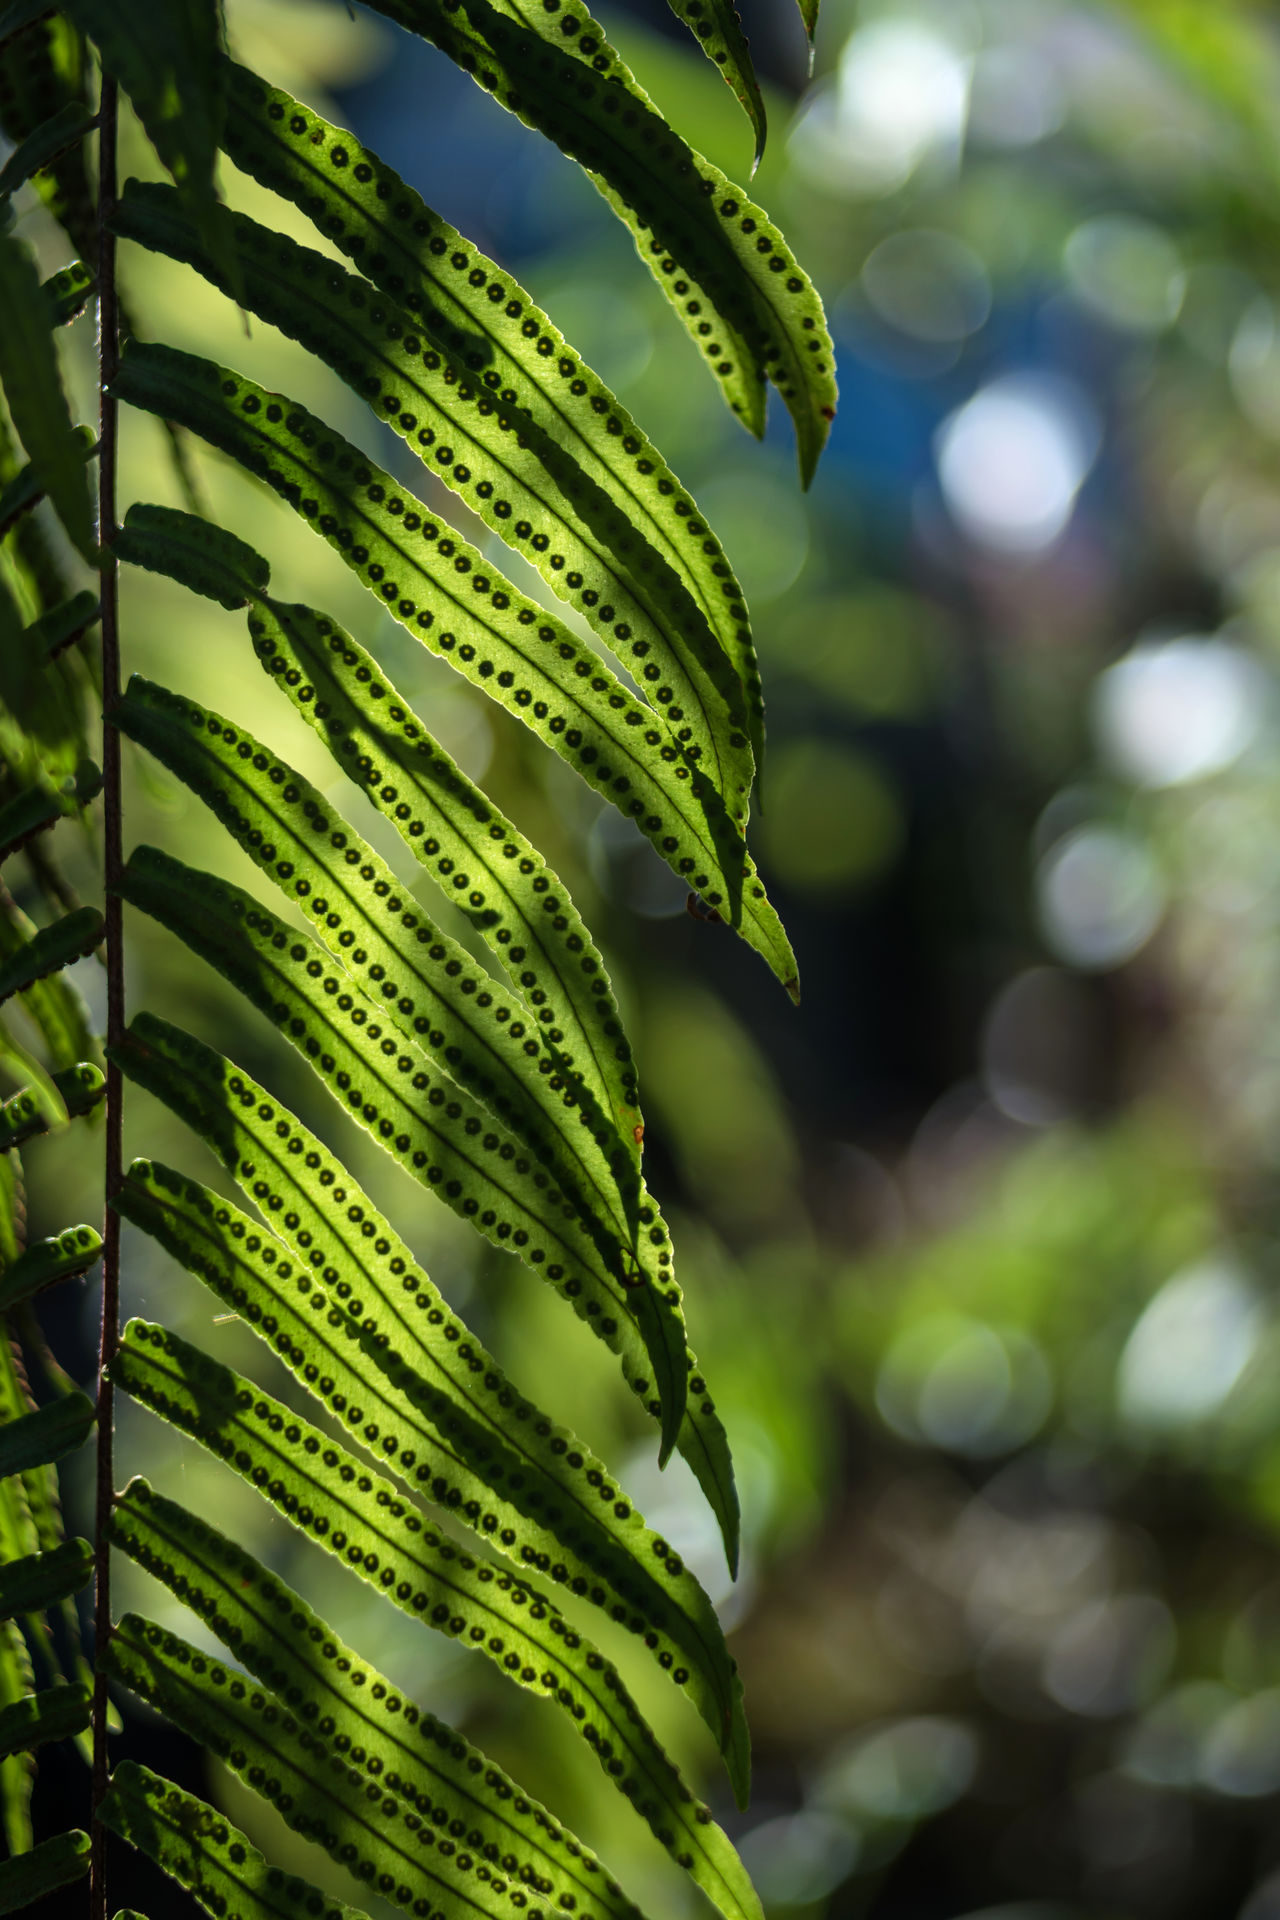 Beauty In Nature Branch Close-up Day Fern Fern Spores Freshness Green Color Growth Leaf Nature No People Outdoors Spores Spores On Fern Tree